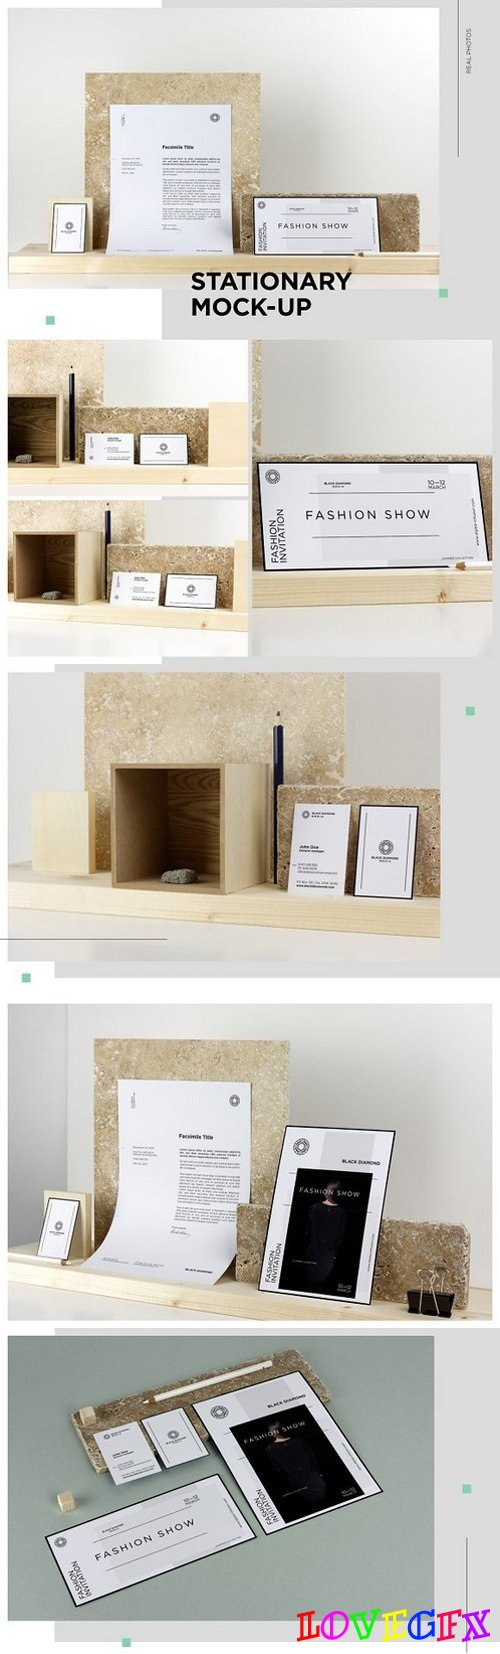 Stationary Mockup / Real Photo Scens 1372249